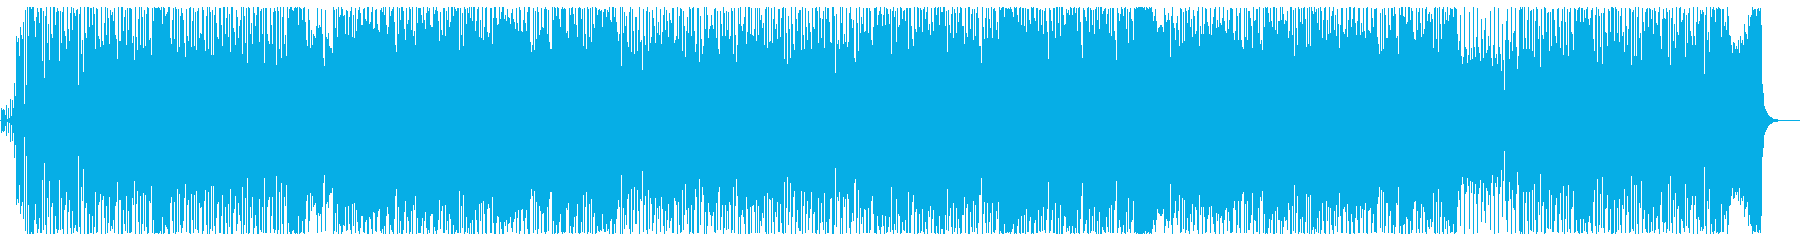 Refreshing and powerful melody's reproduced waveform